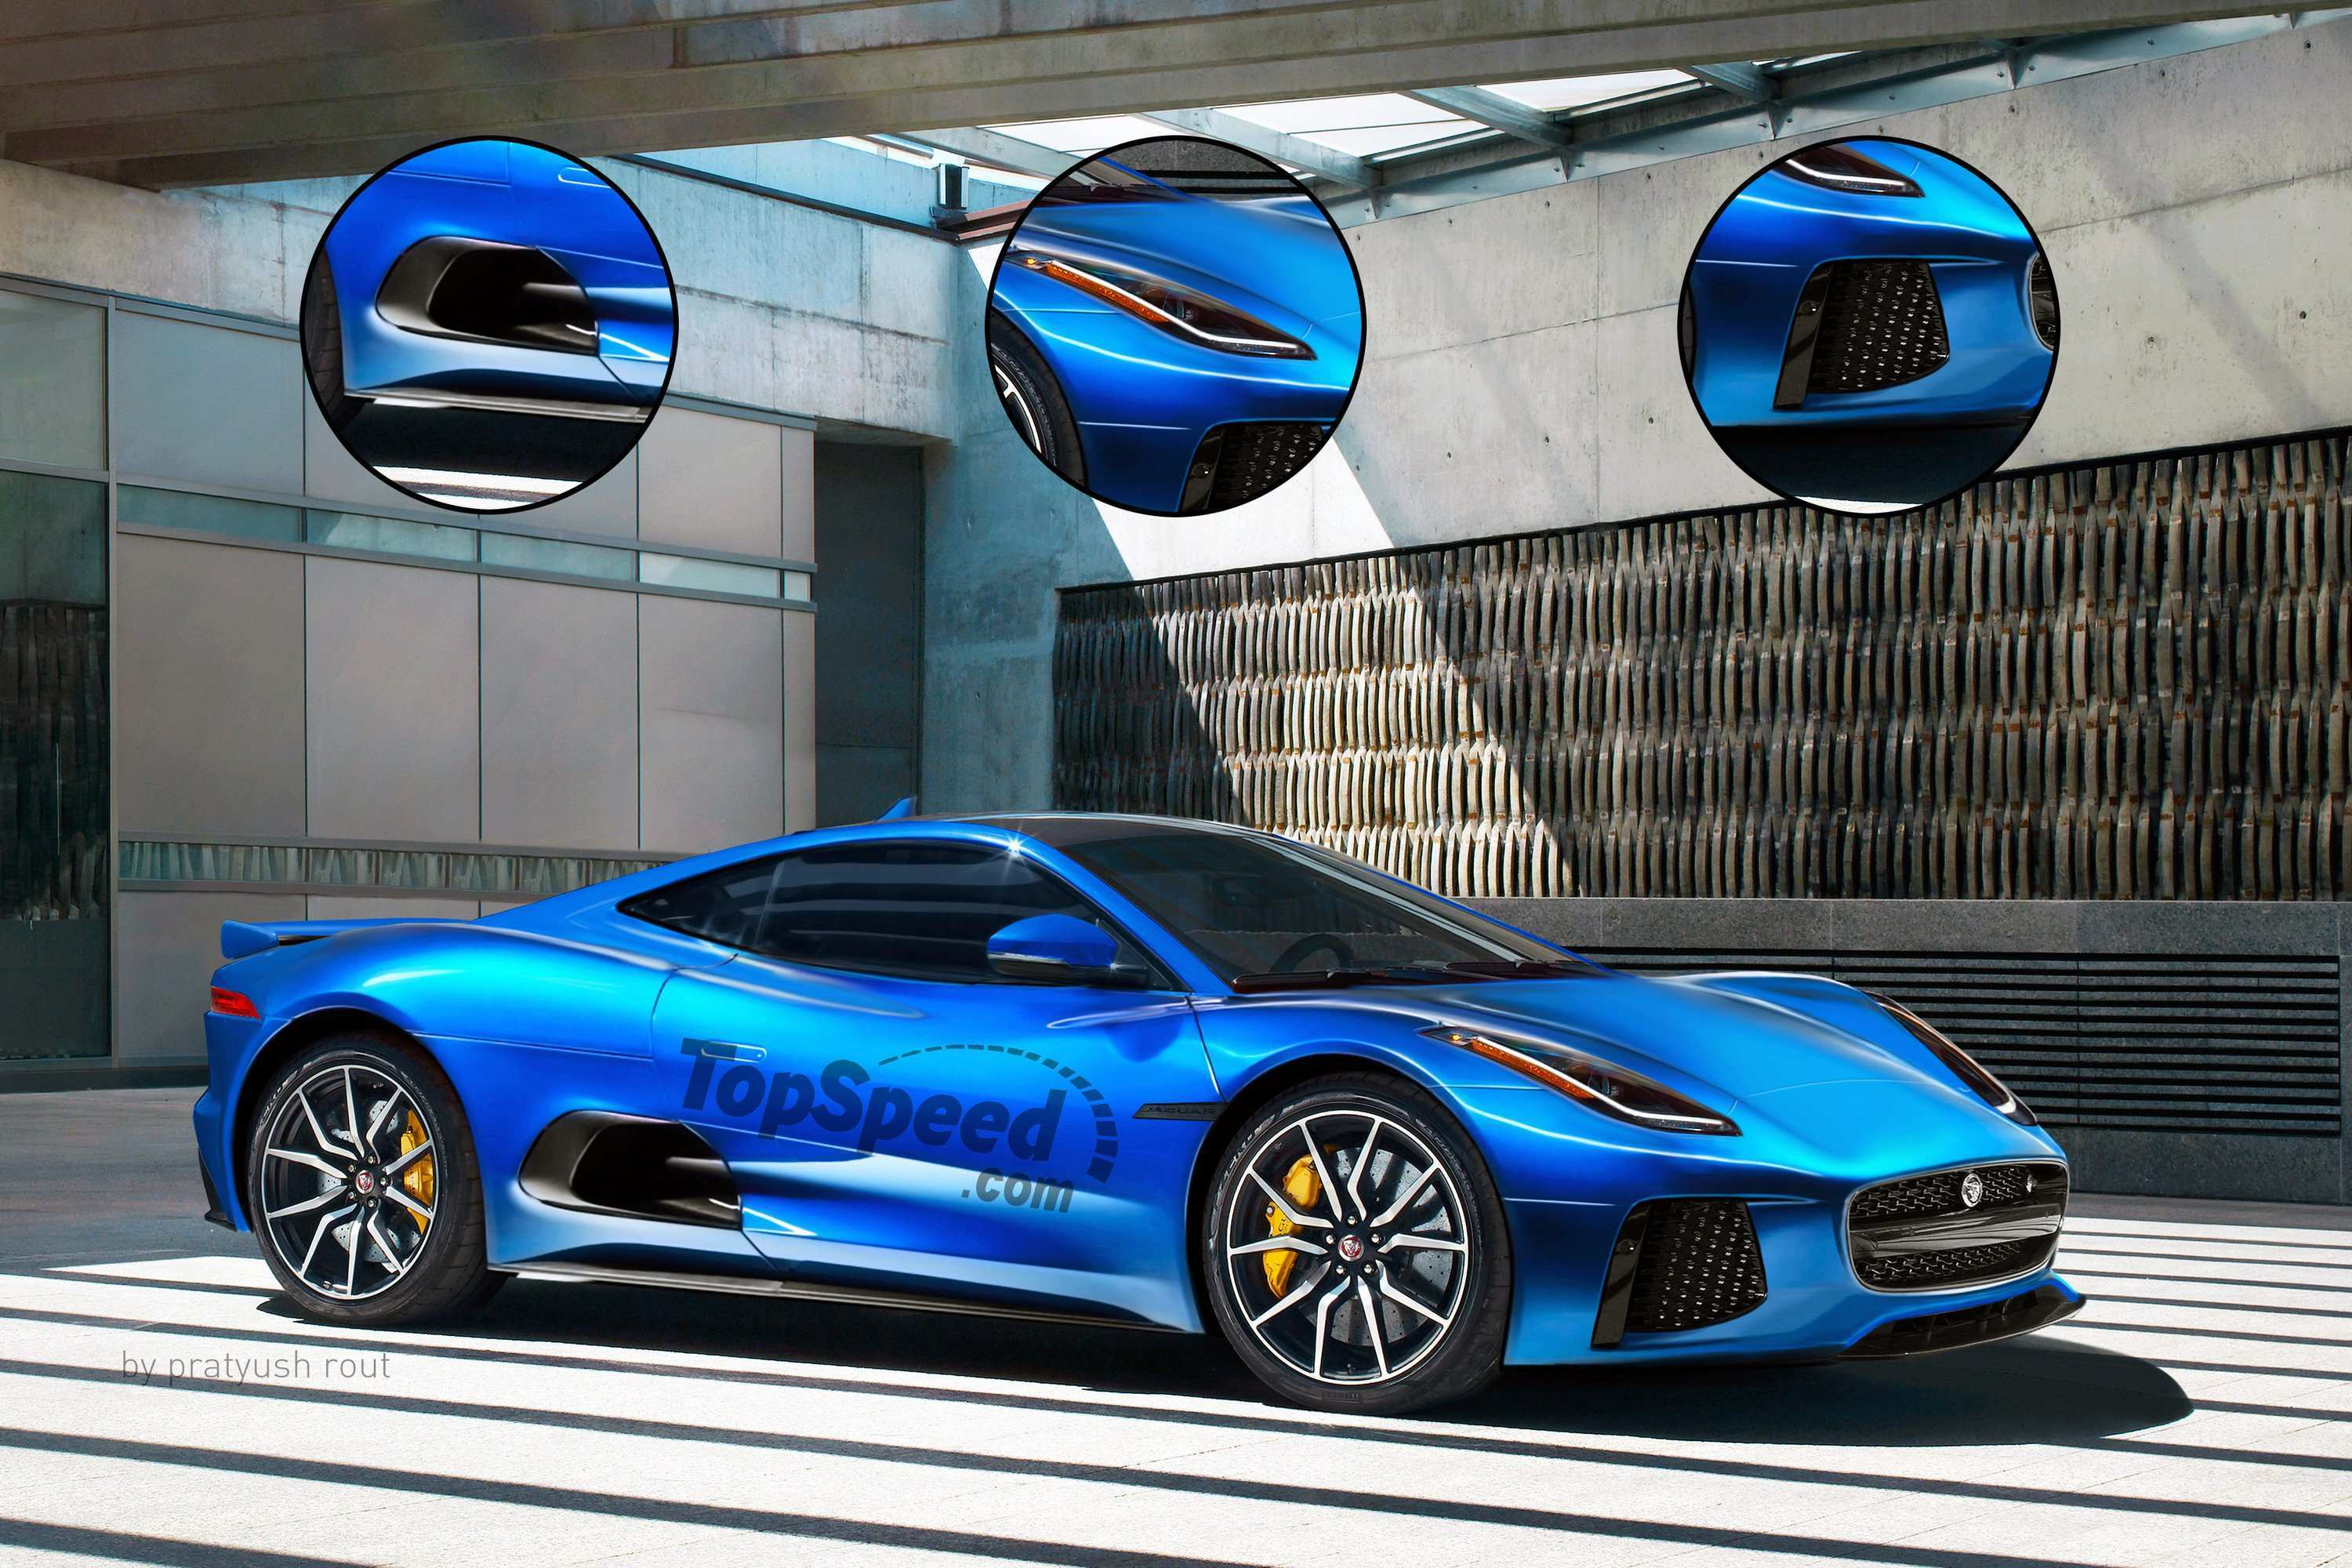 88 Concept of Jaguar F Type 2020 Exterior Style for Jaguar F Type 2020 Exterior